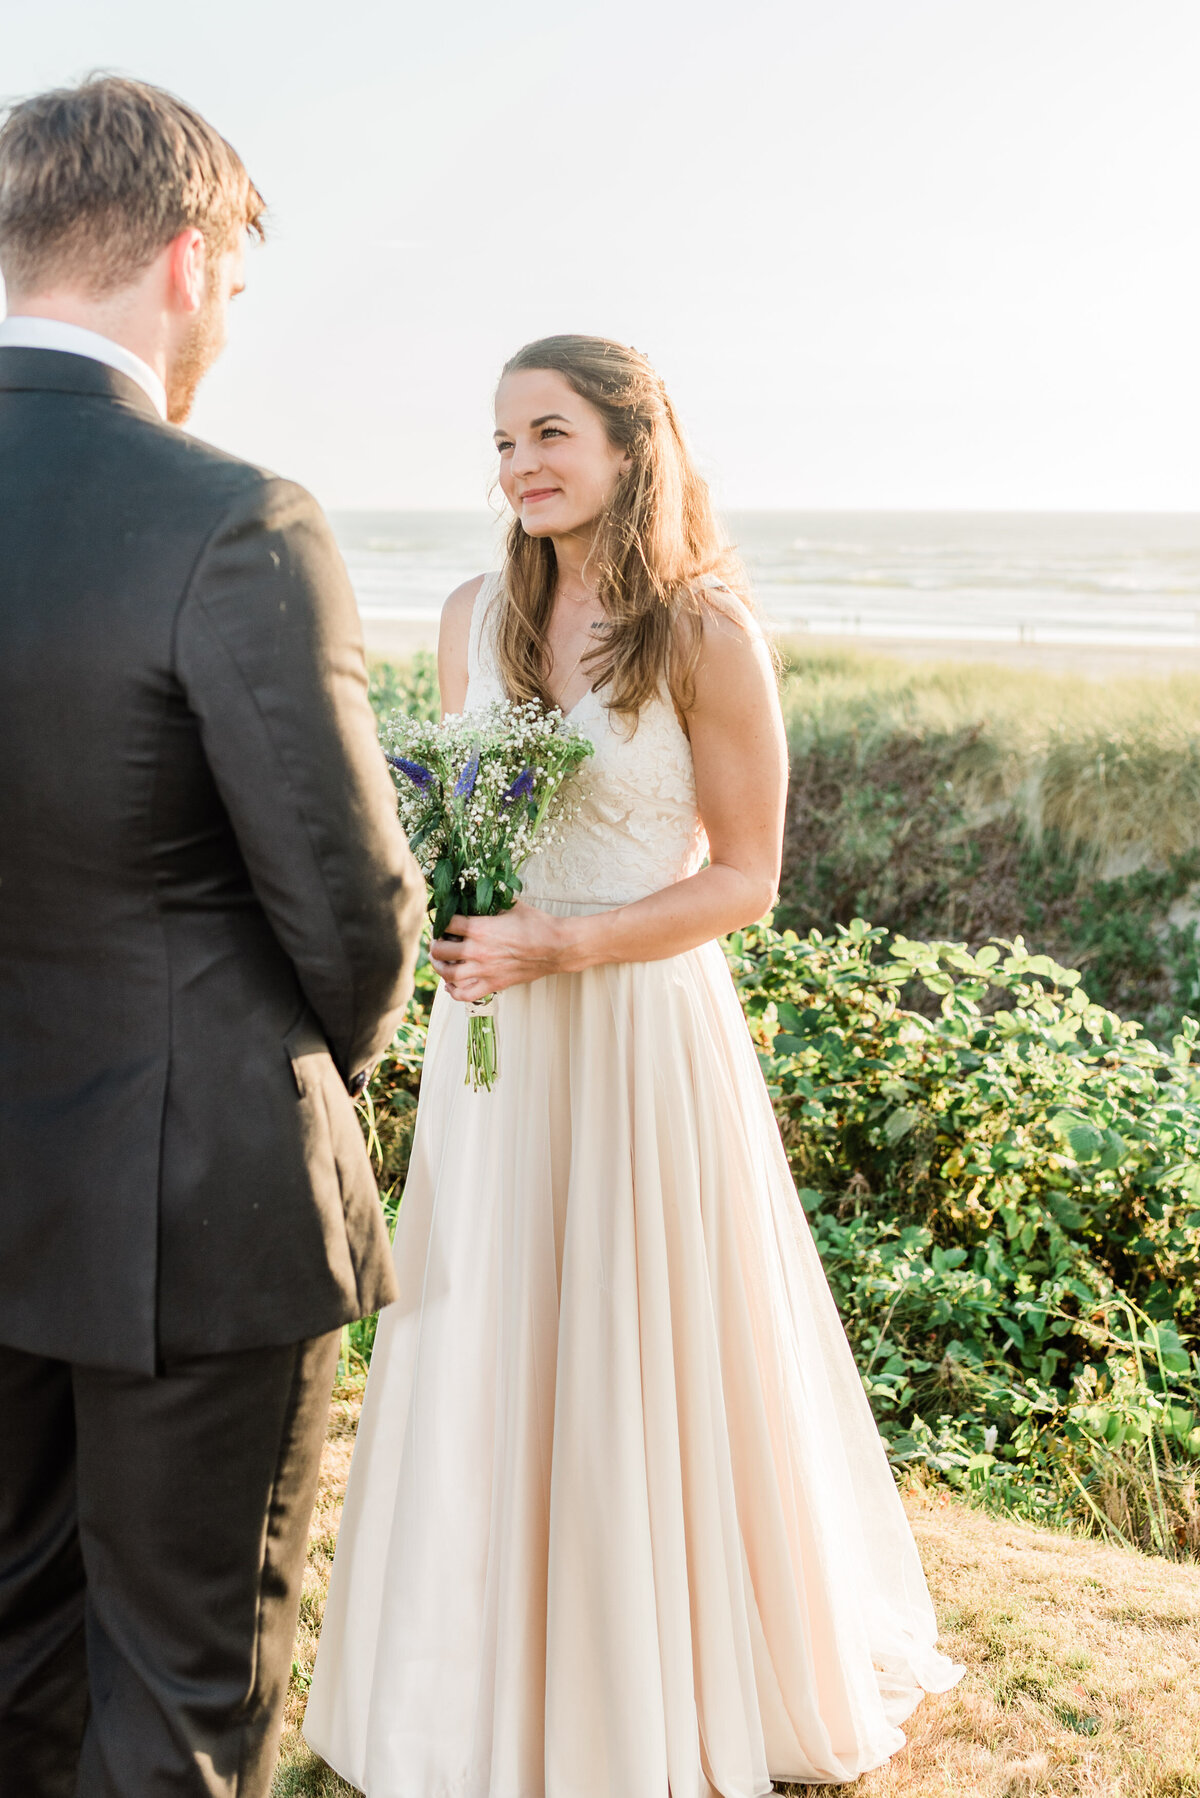 Cannon-Beach-Elopement-Photographer-15